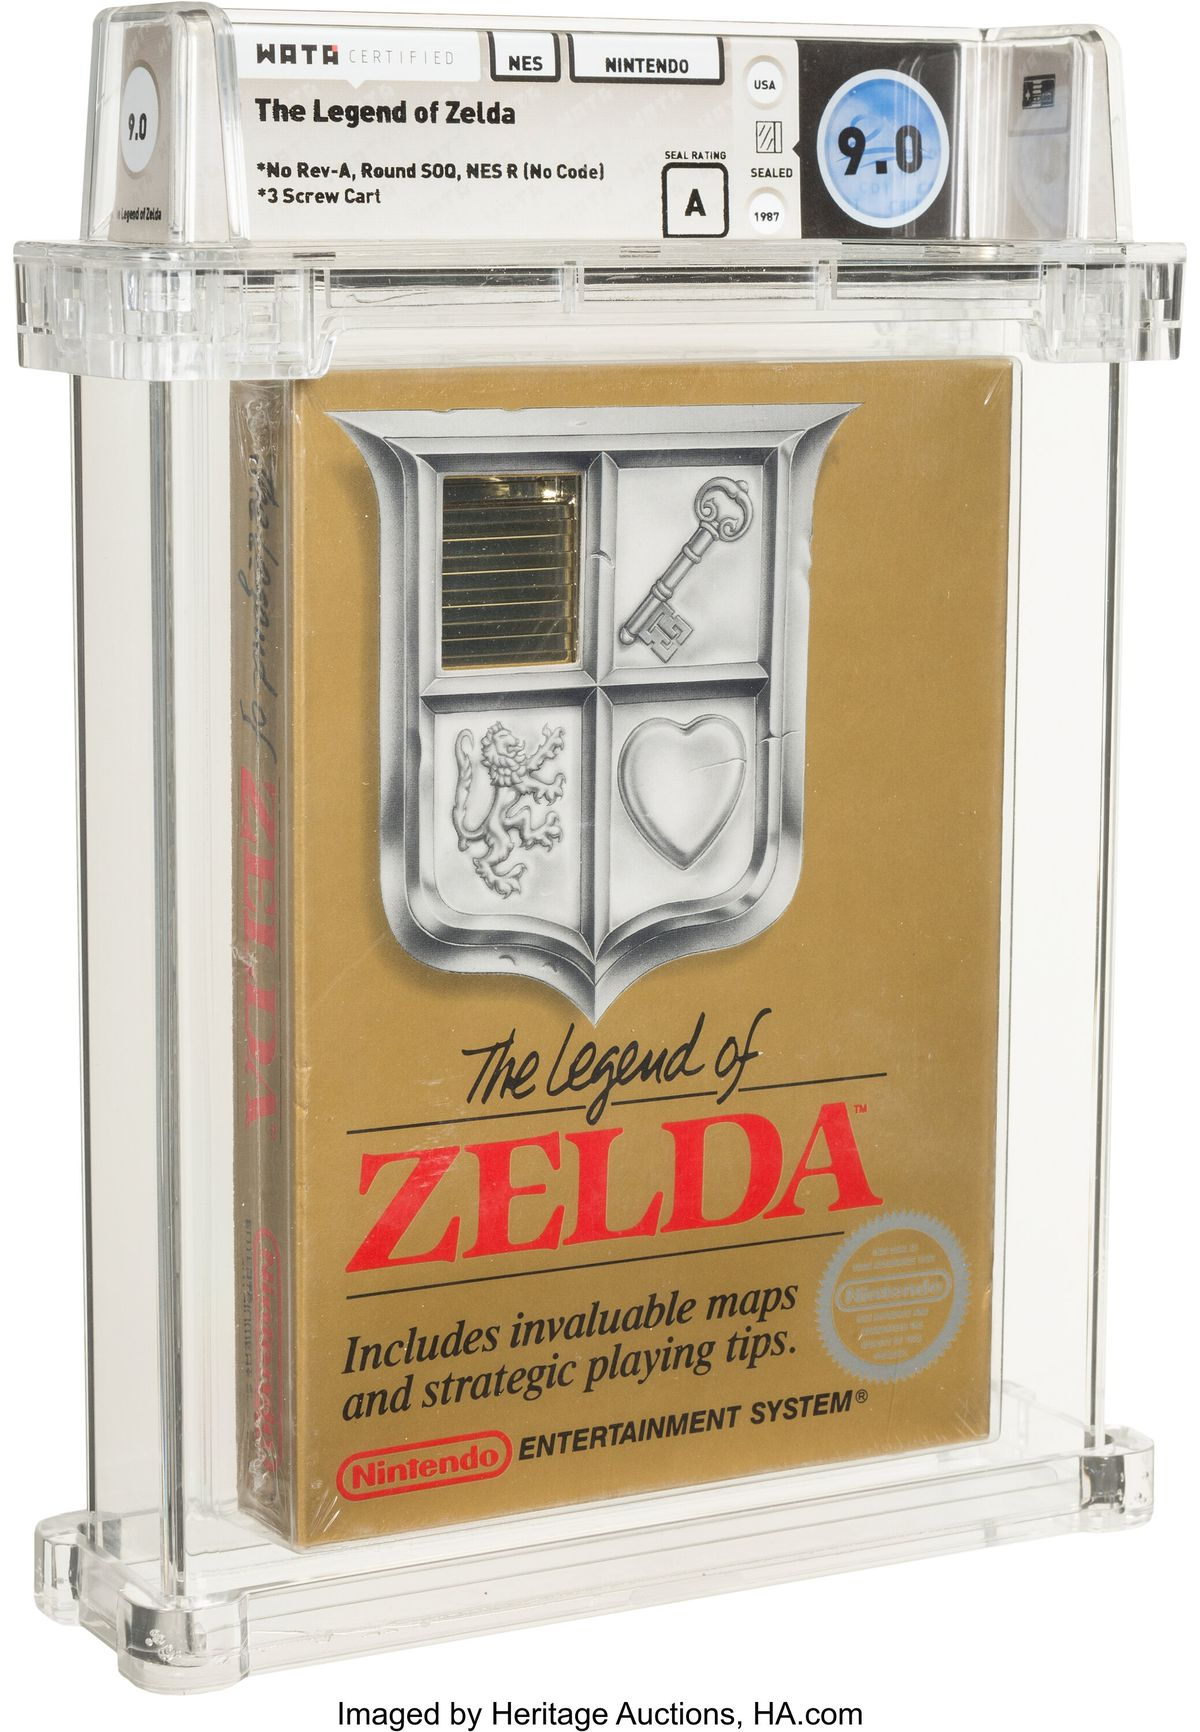 a picture of a sealed Zelda cartridge